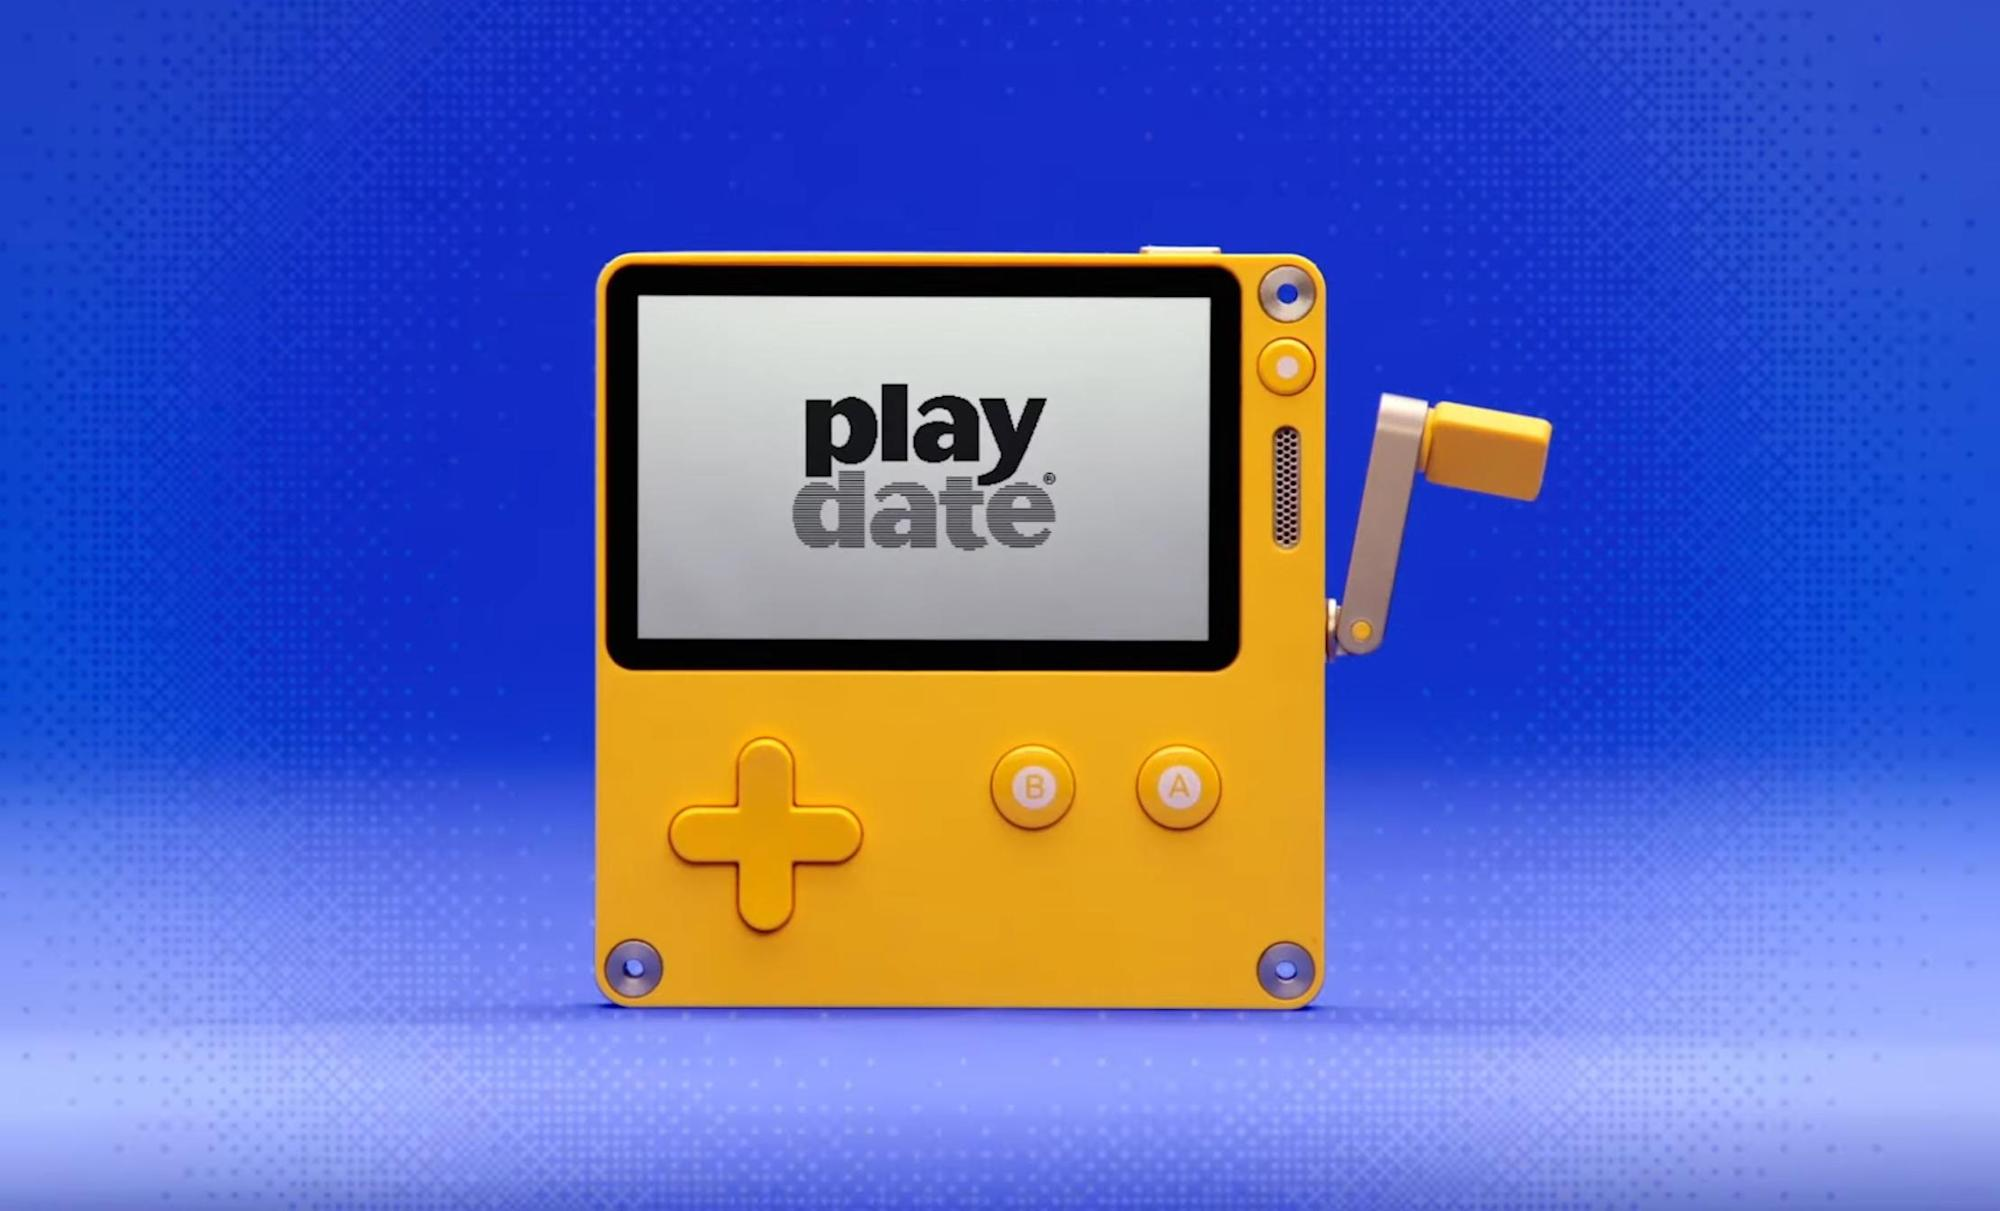 Tiny handheld Playdate preorders open next month for $179 with 24 charming monochrome games to start – Yahoo News Australia